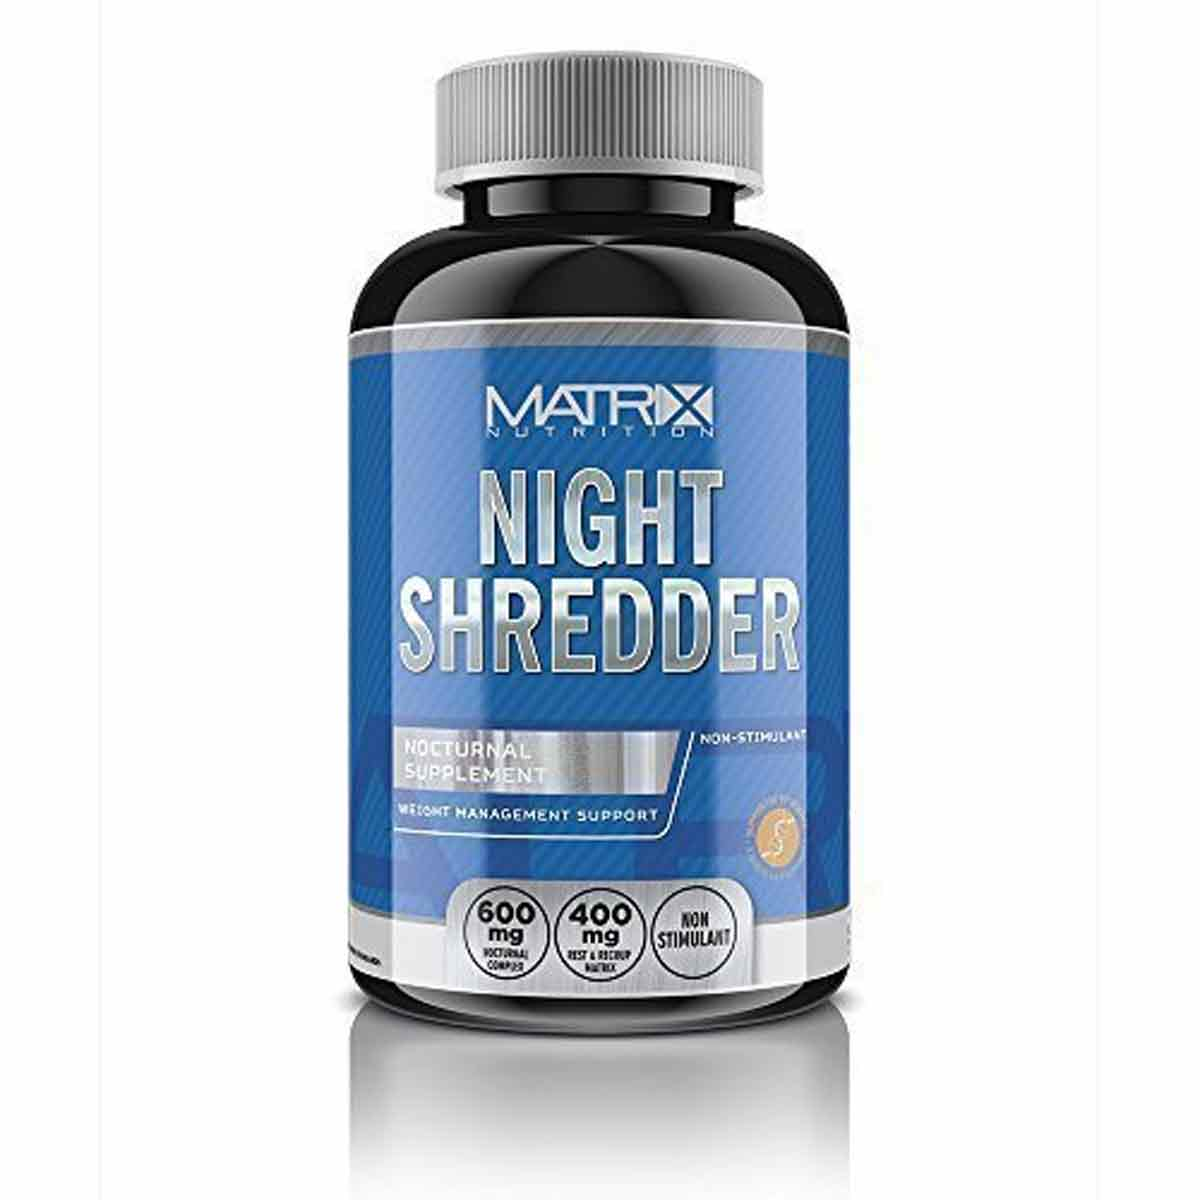 Matrix Night Shredder